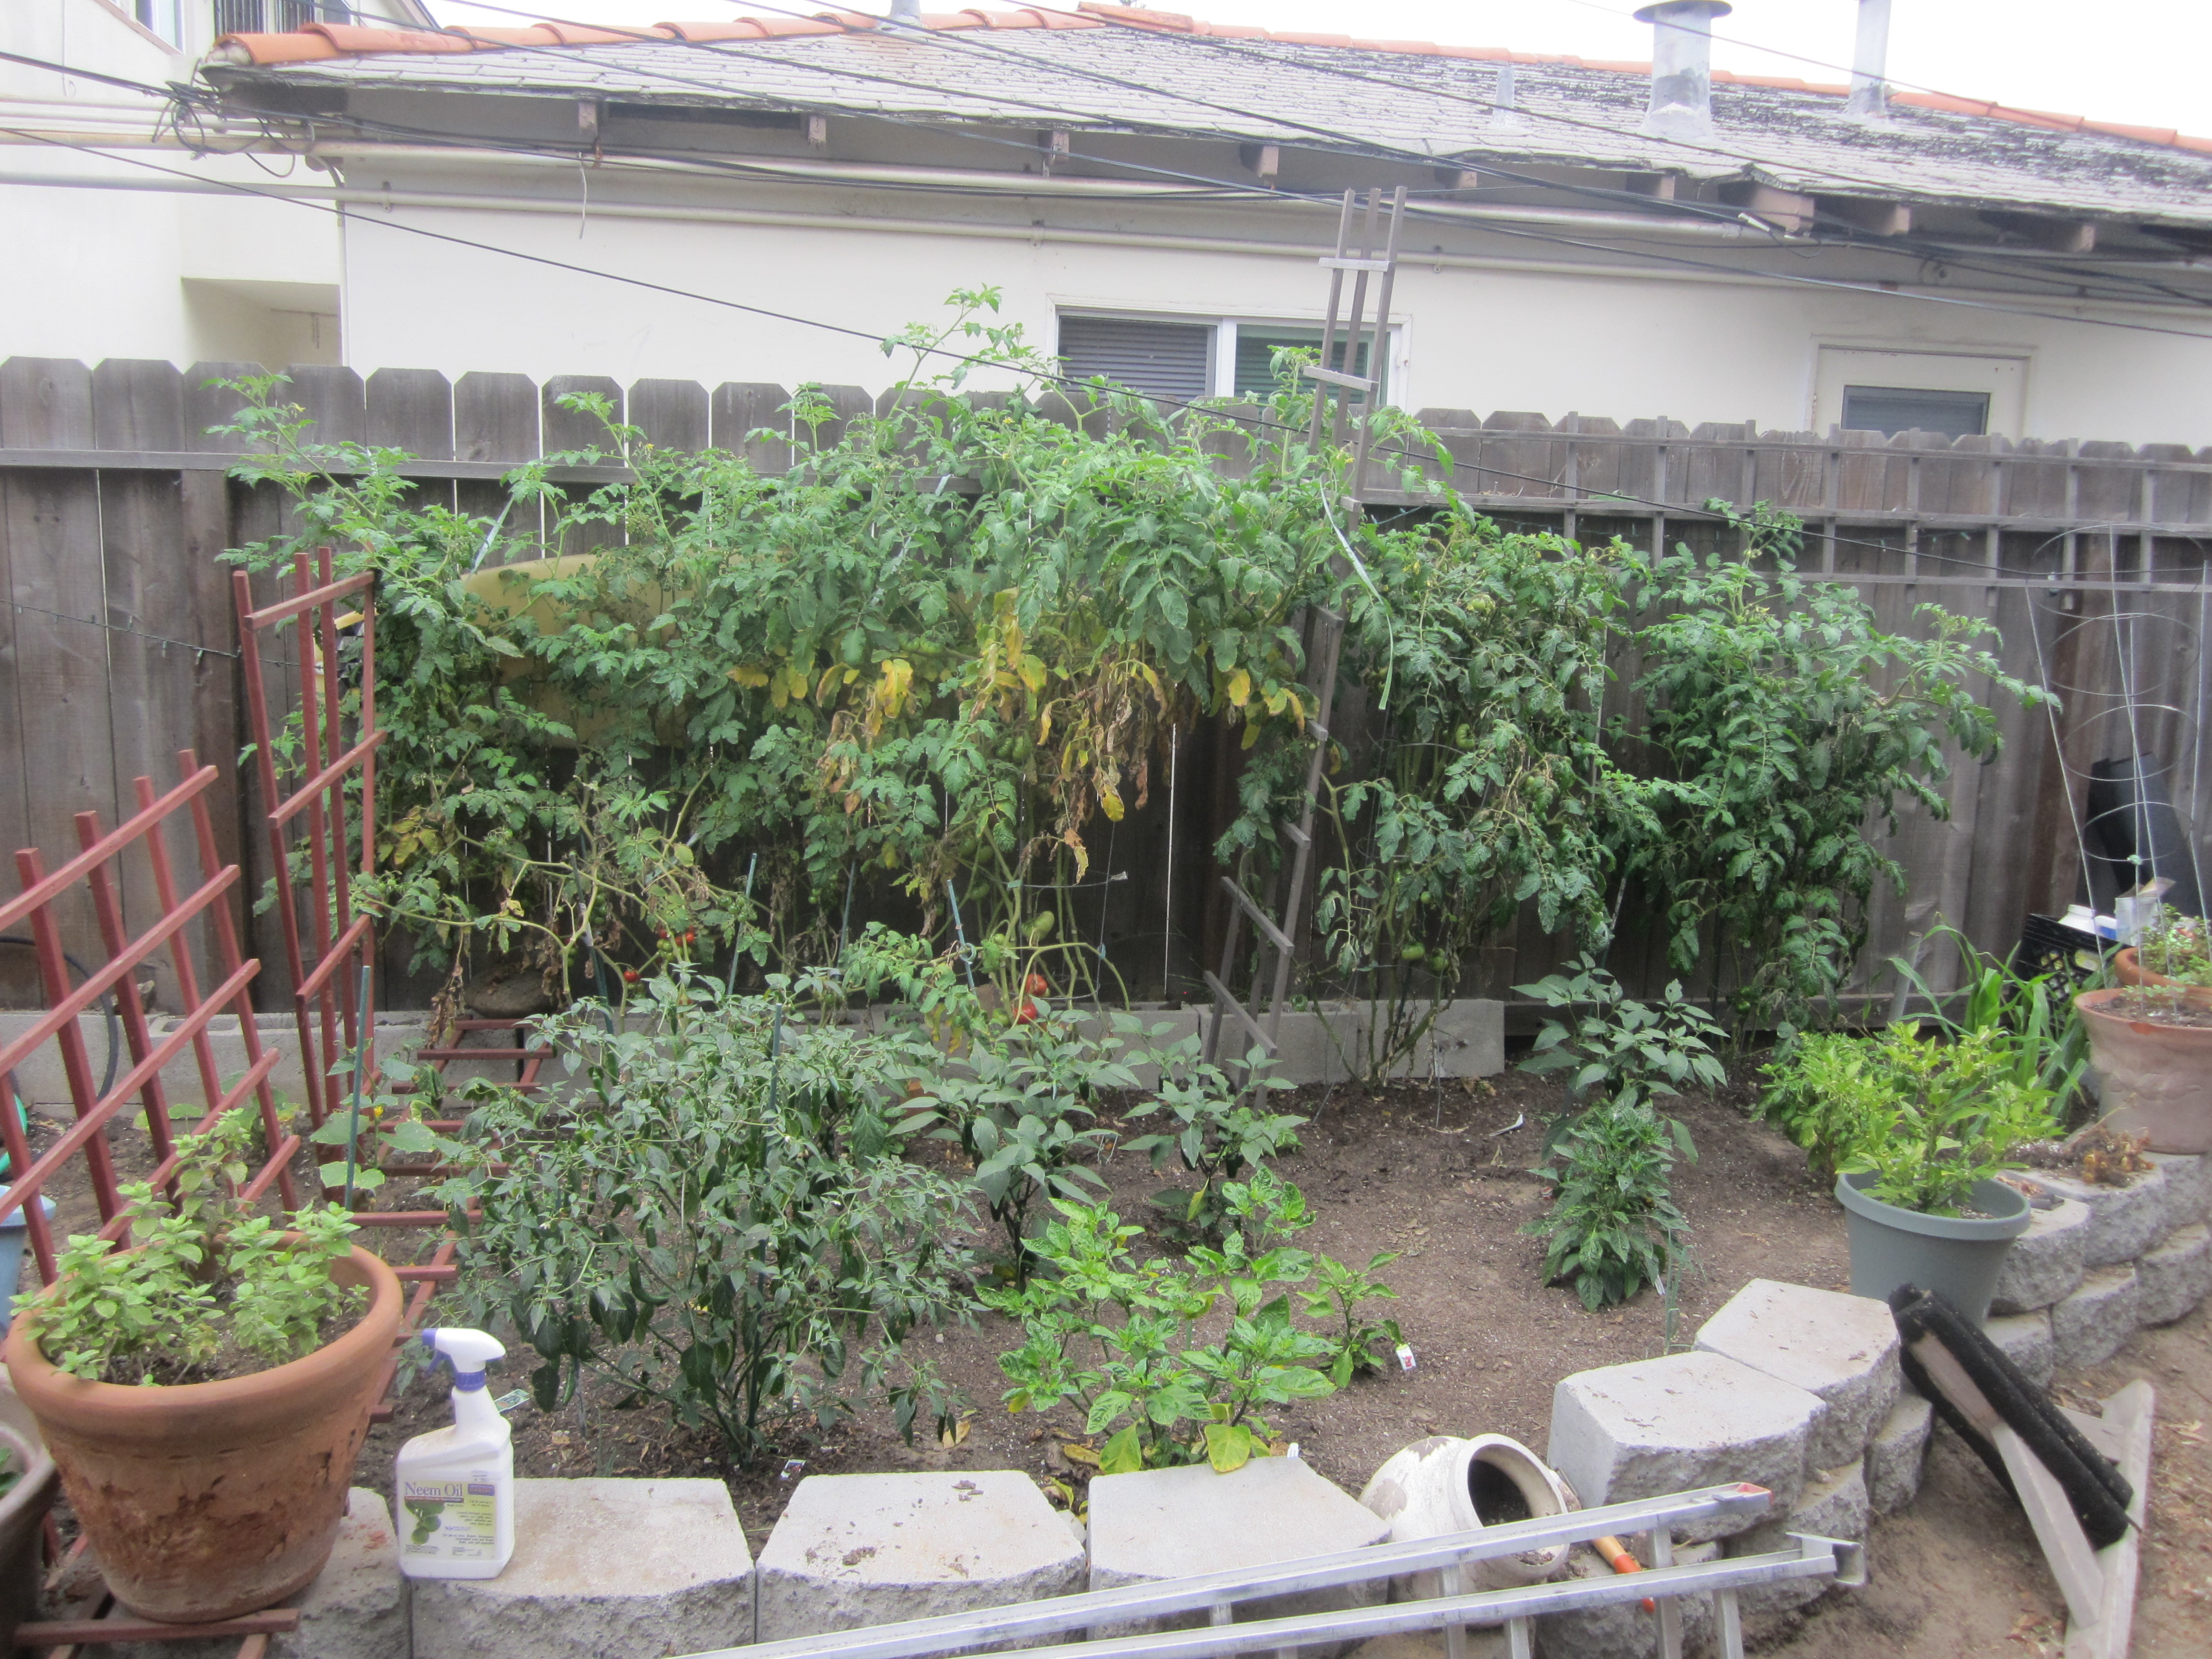 Cape mayhem garden update tomato questions agridude for Gardening questionnaire